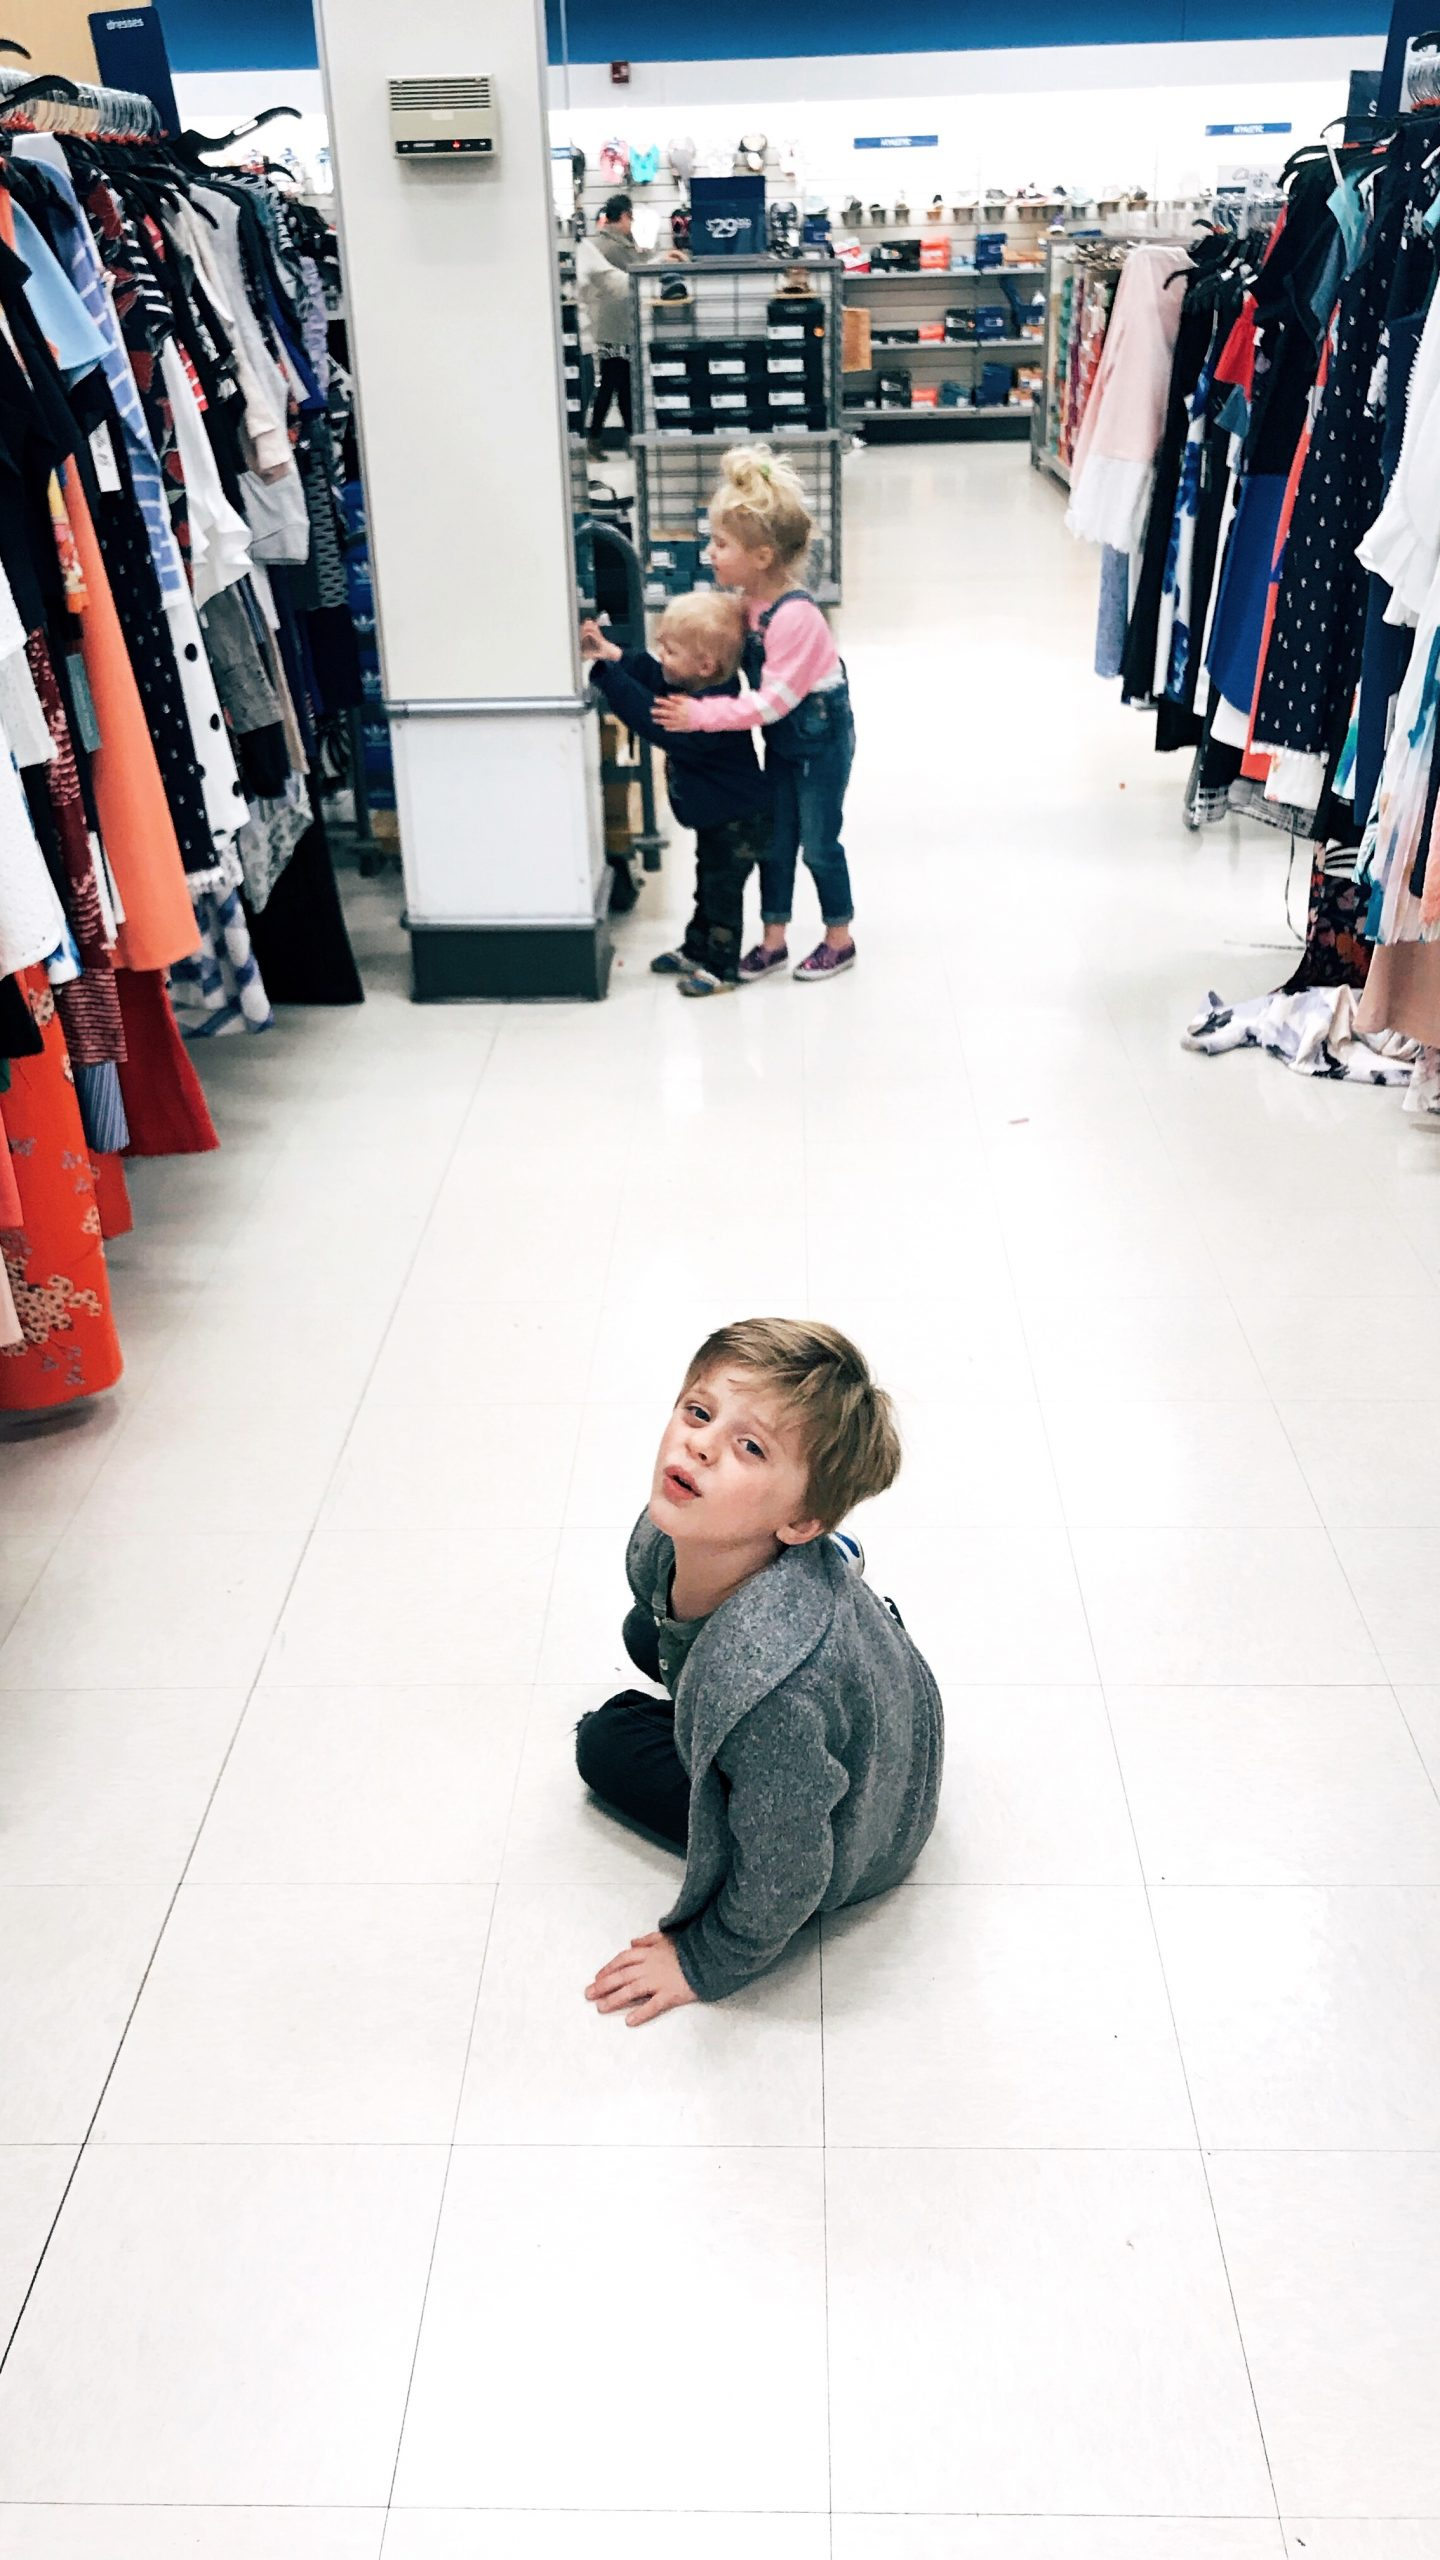 Worst shopping trip to date: next time, pack the goldfish